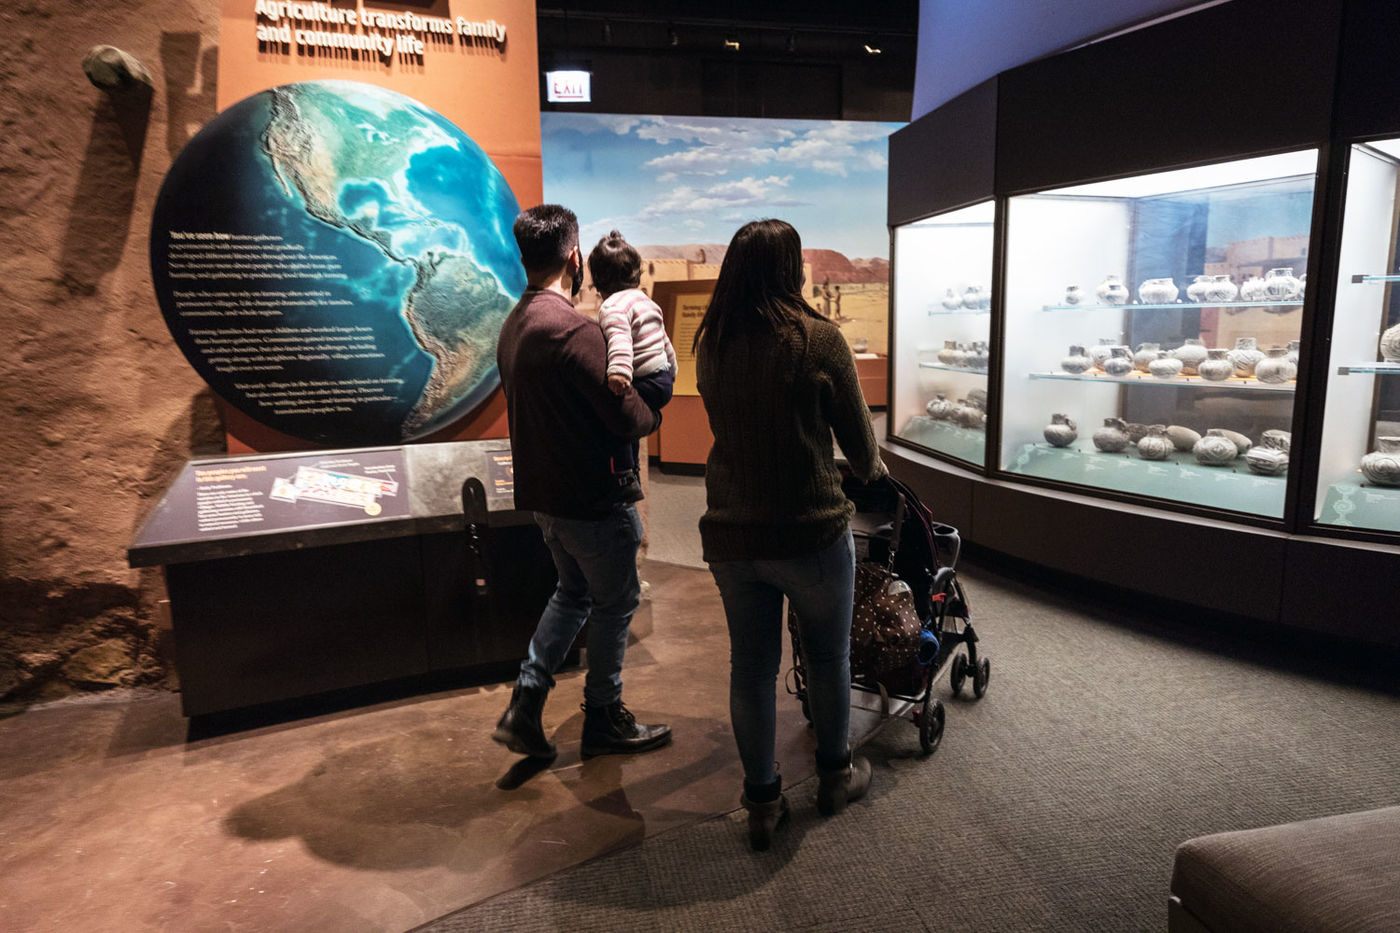 Two adults and a small child walk through the Ancient Americas exhibition. A map of the globe is on the wall to the left, and many pots are in a display case to the right.